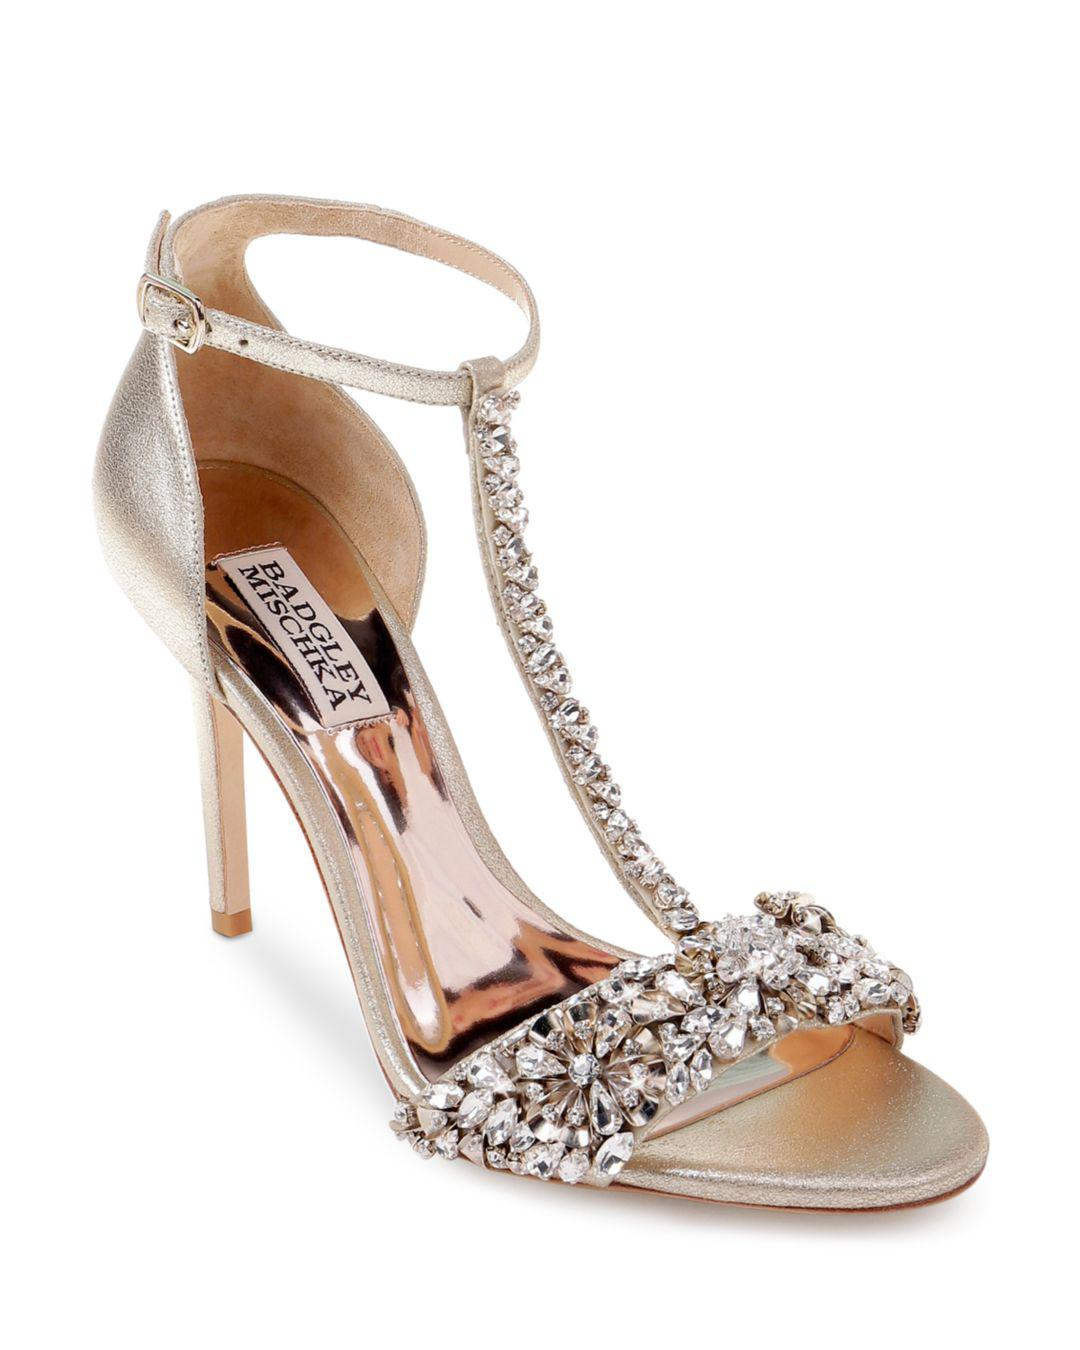 a4d7167d6710ad Lyst - Badgley Mischka Women s Veil Ii Open-toe T-strap Leather High-heel  Sandals